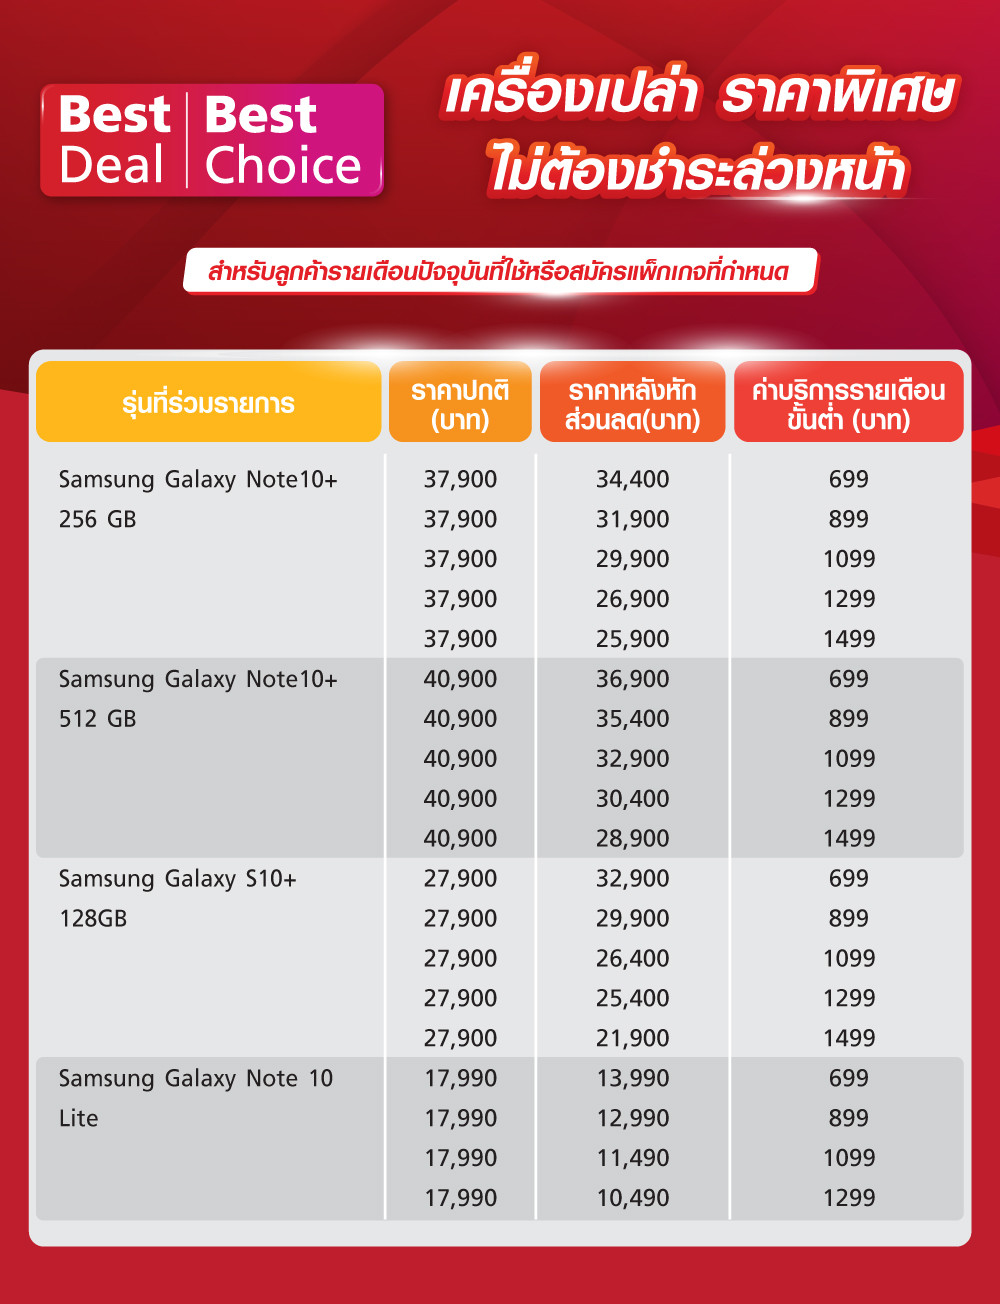 best-deal-best-choice_samsung-galaxy-not